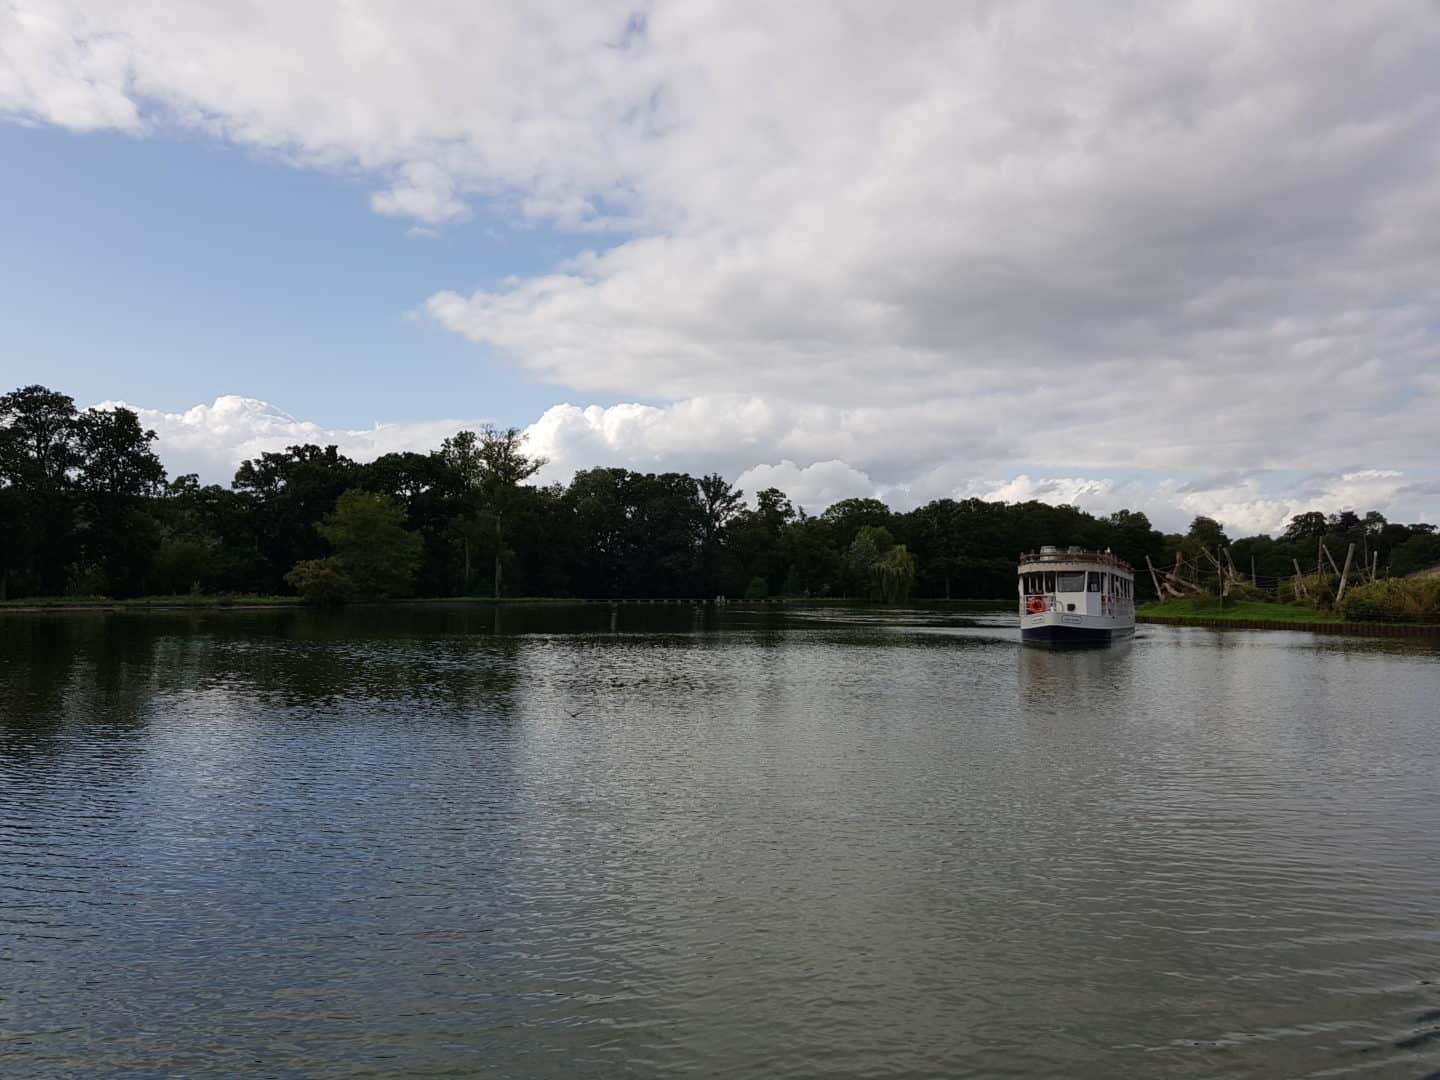 Boat ride on lake at Longleat Safari Park